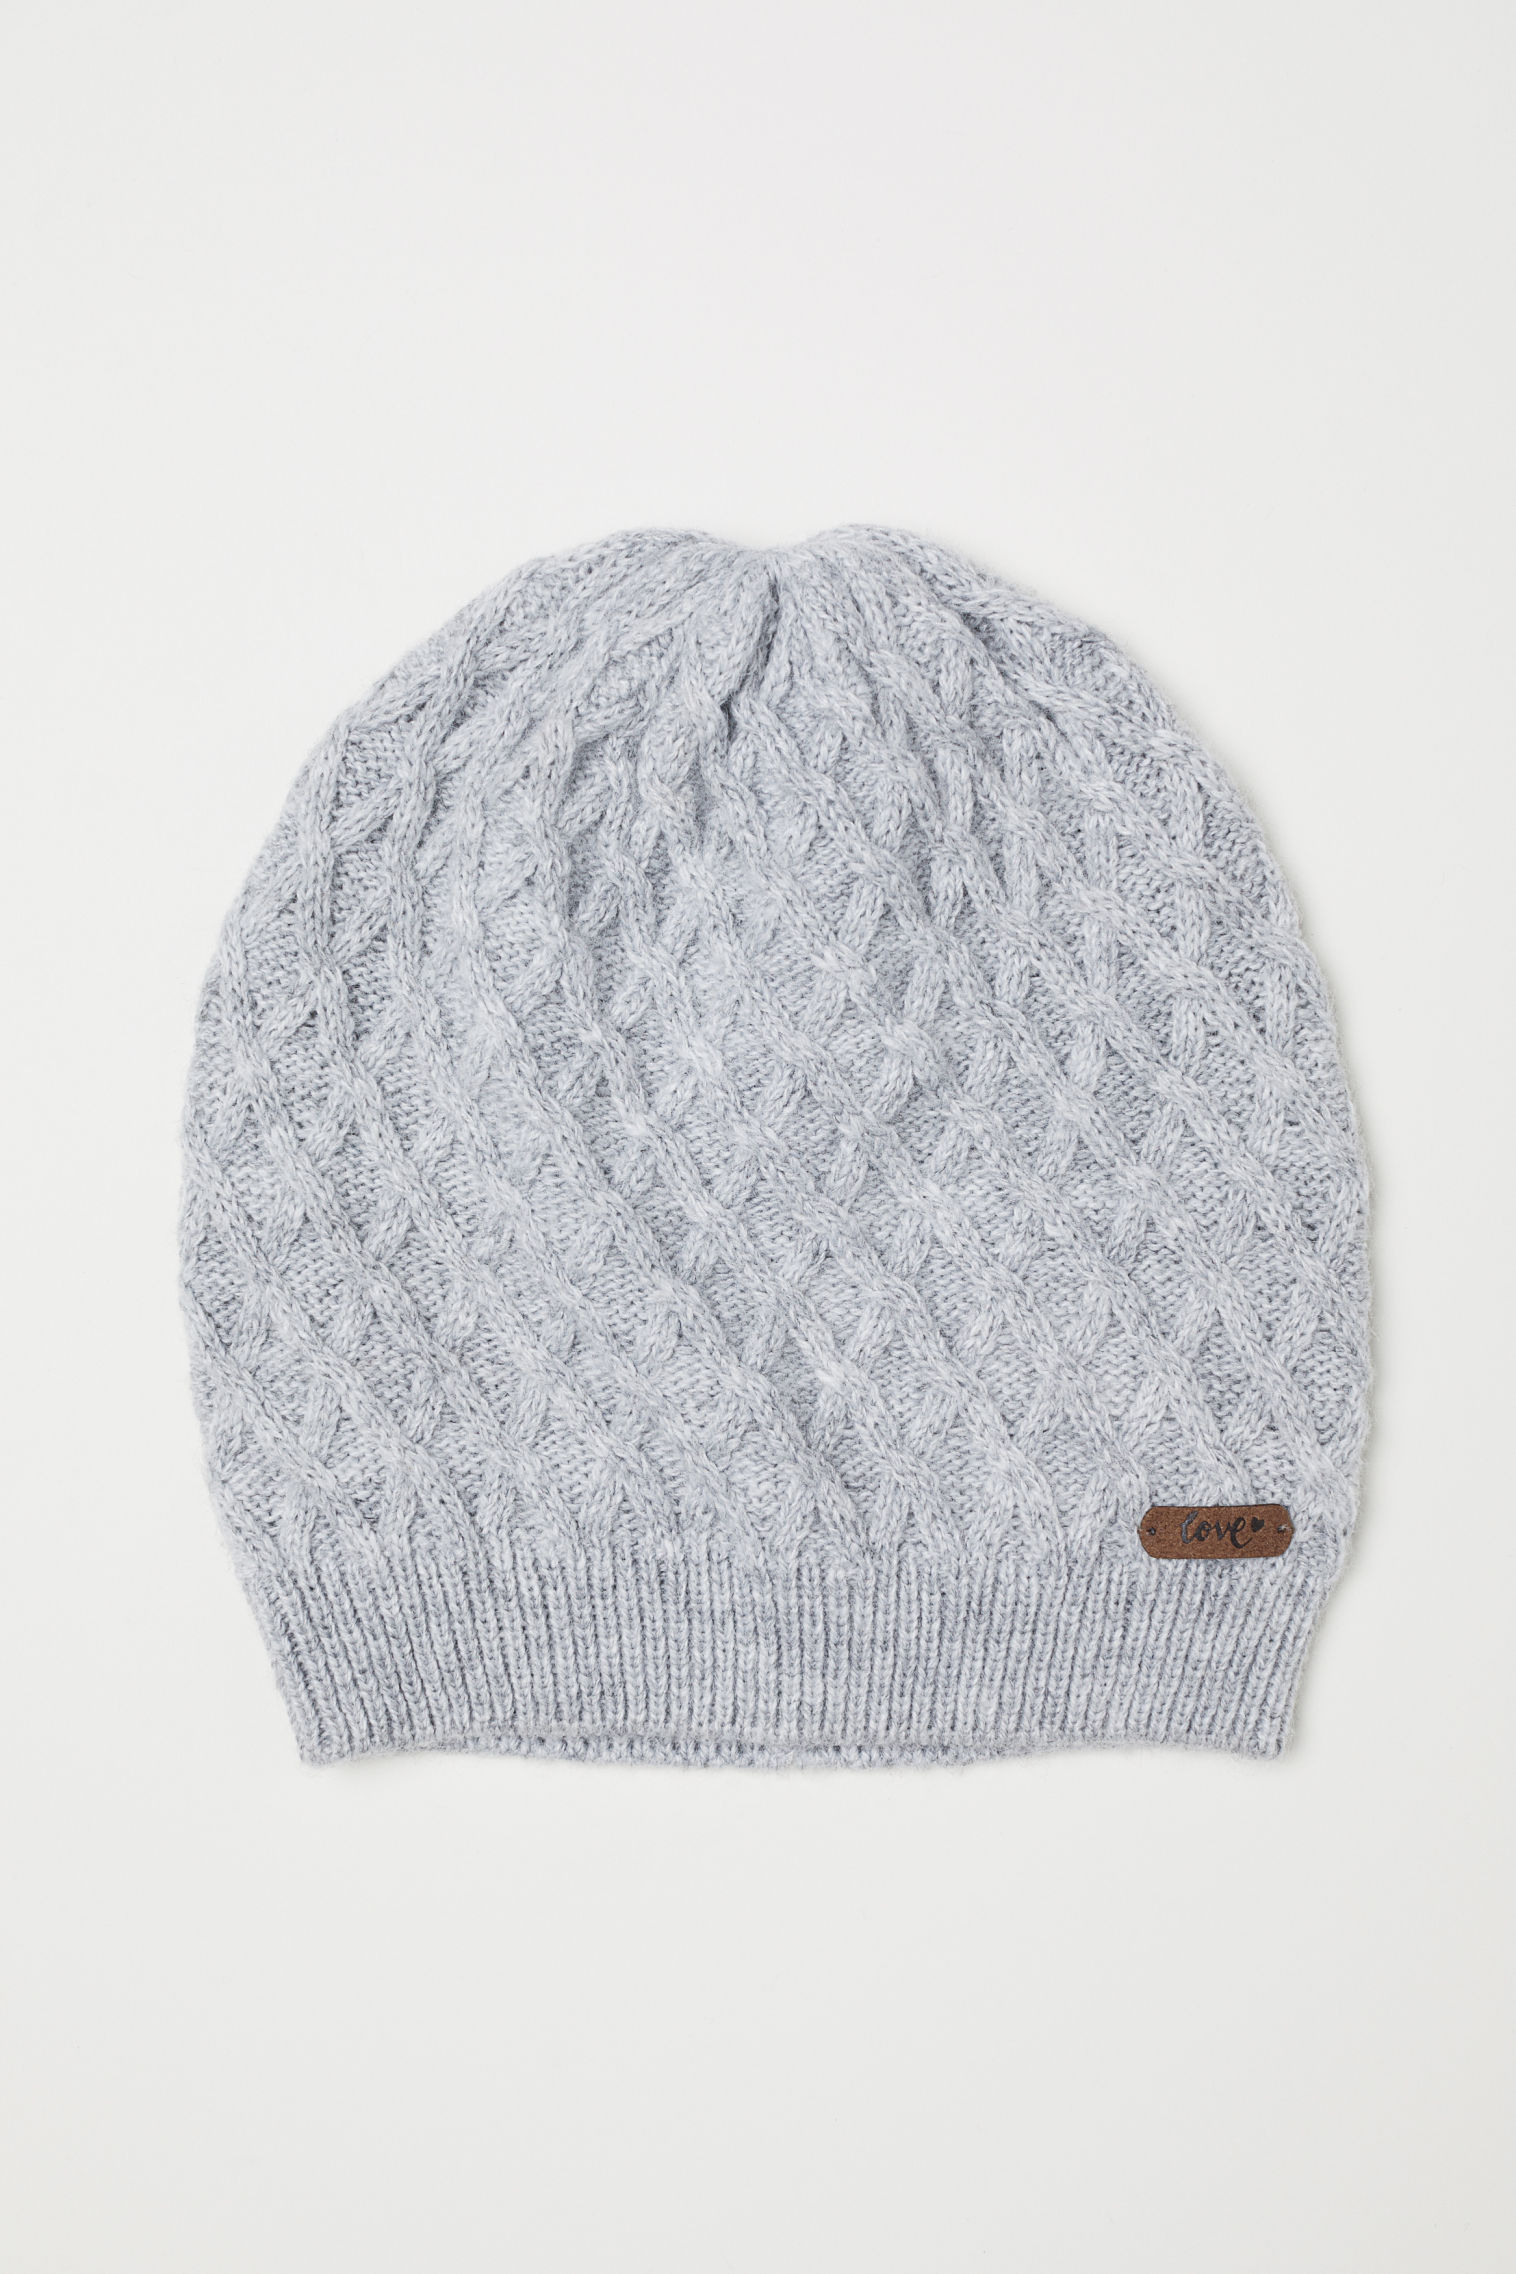 Cable-knit hat ... 42a81ae9579